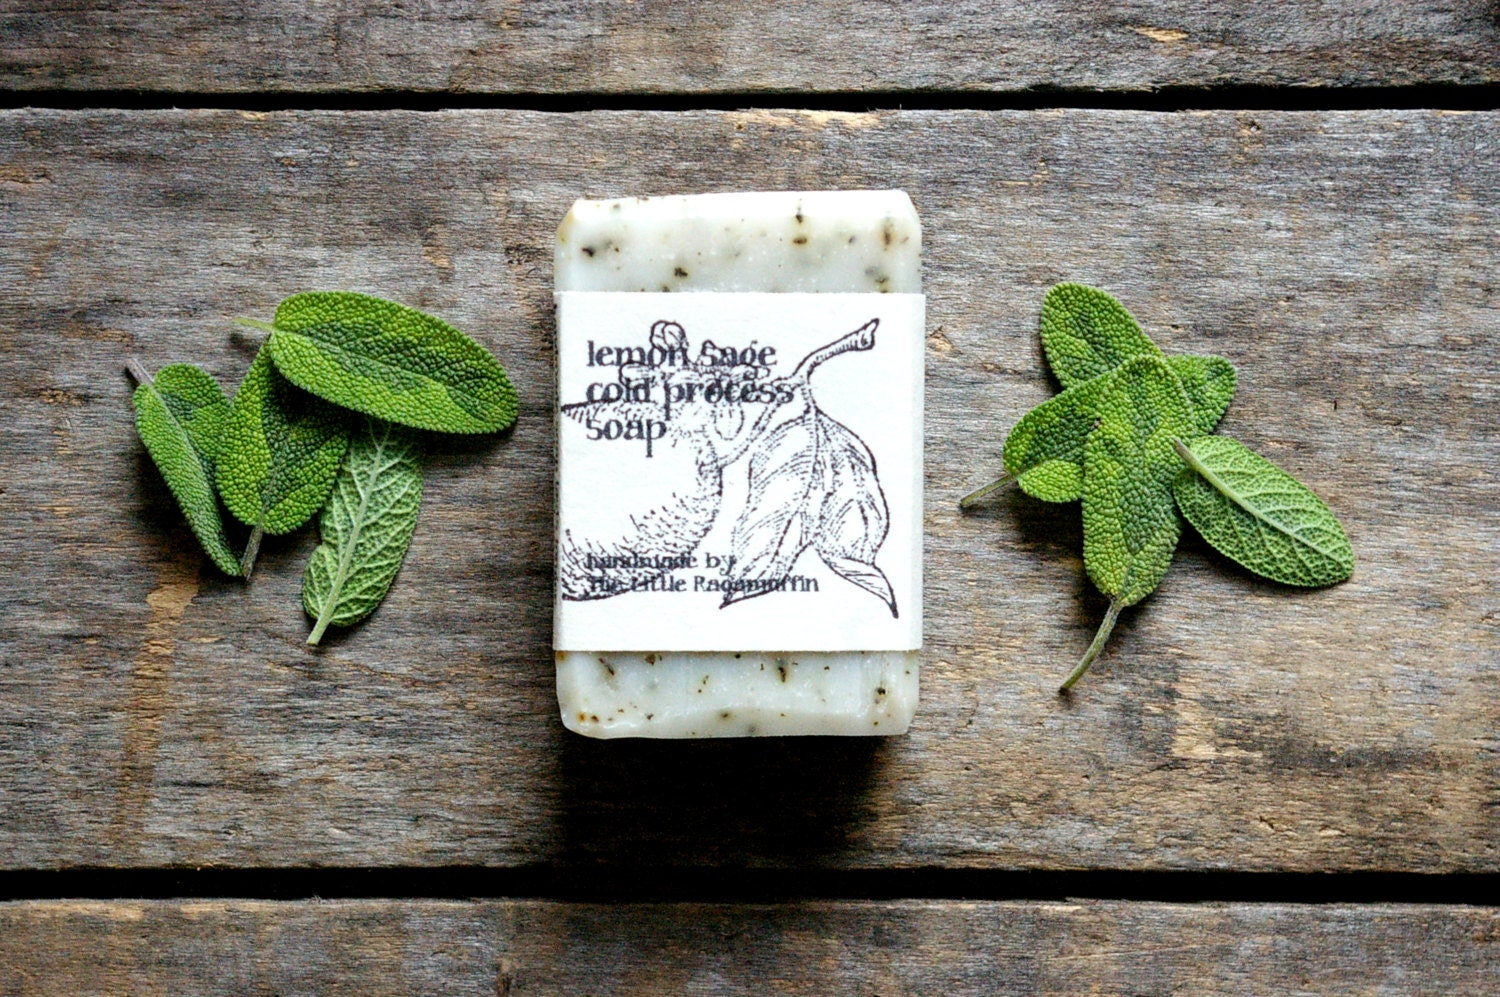 Handmade Soap, Cold Process Soap, lemon sage soap, homemade soap, small bar, organic, all natural soap, vegan soap, lightly scented - TheLittleRagamuffin